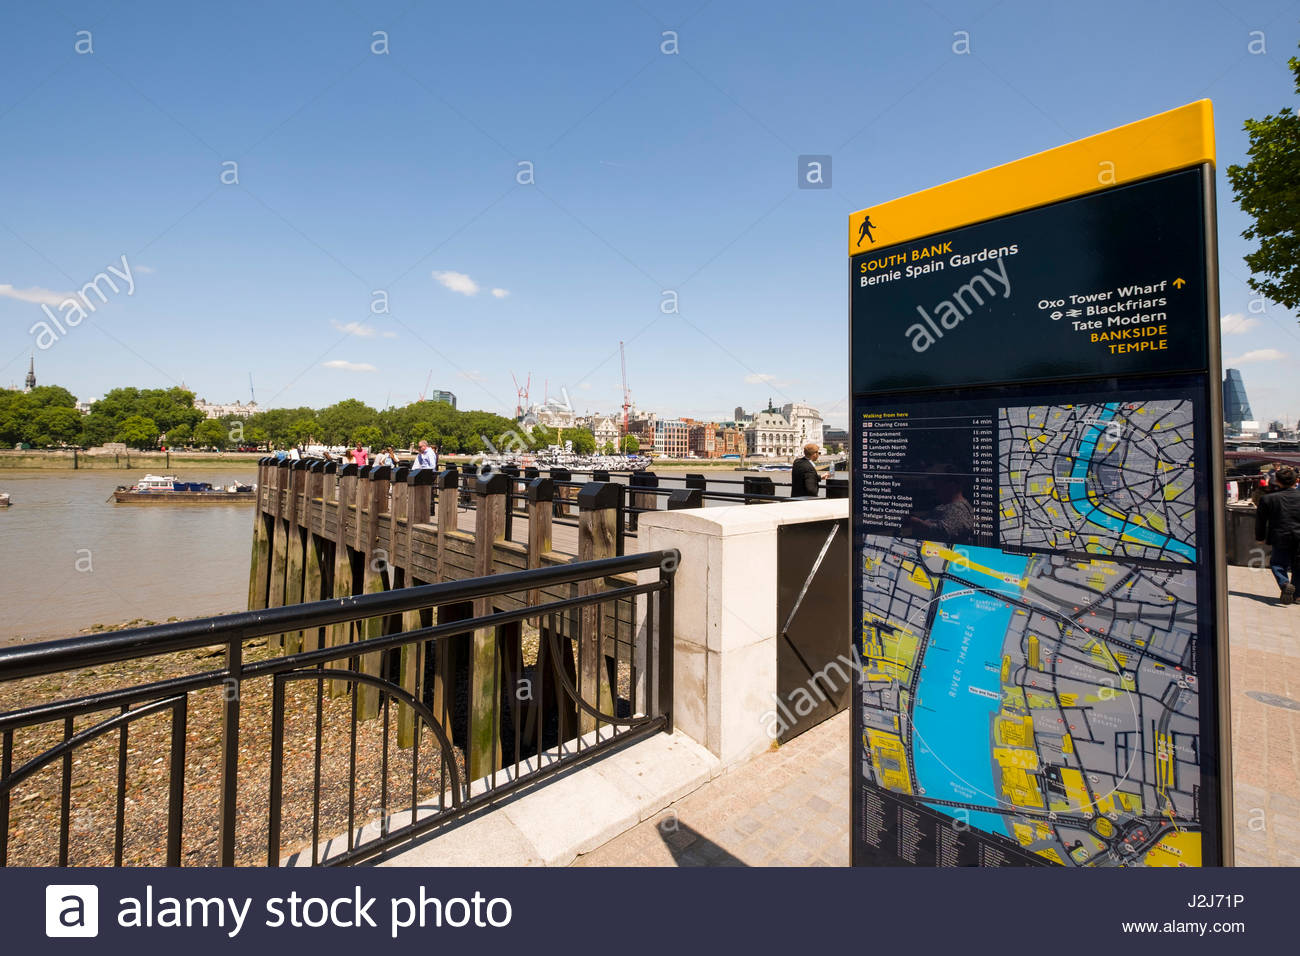 Sign and map of the South Bank along the Queen's Walk, Lambeth, London, England, United Kingdom - Stock Image